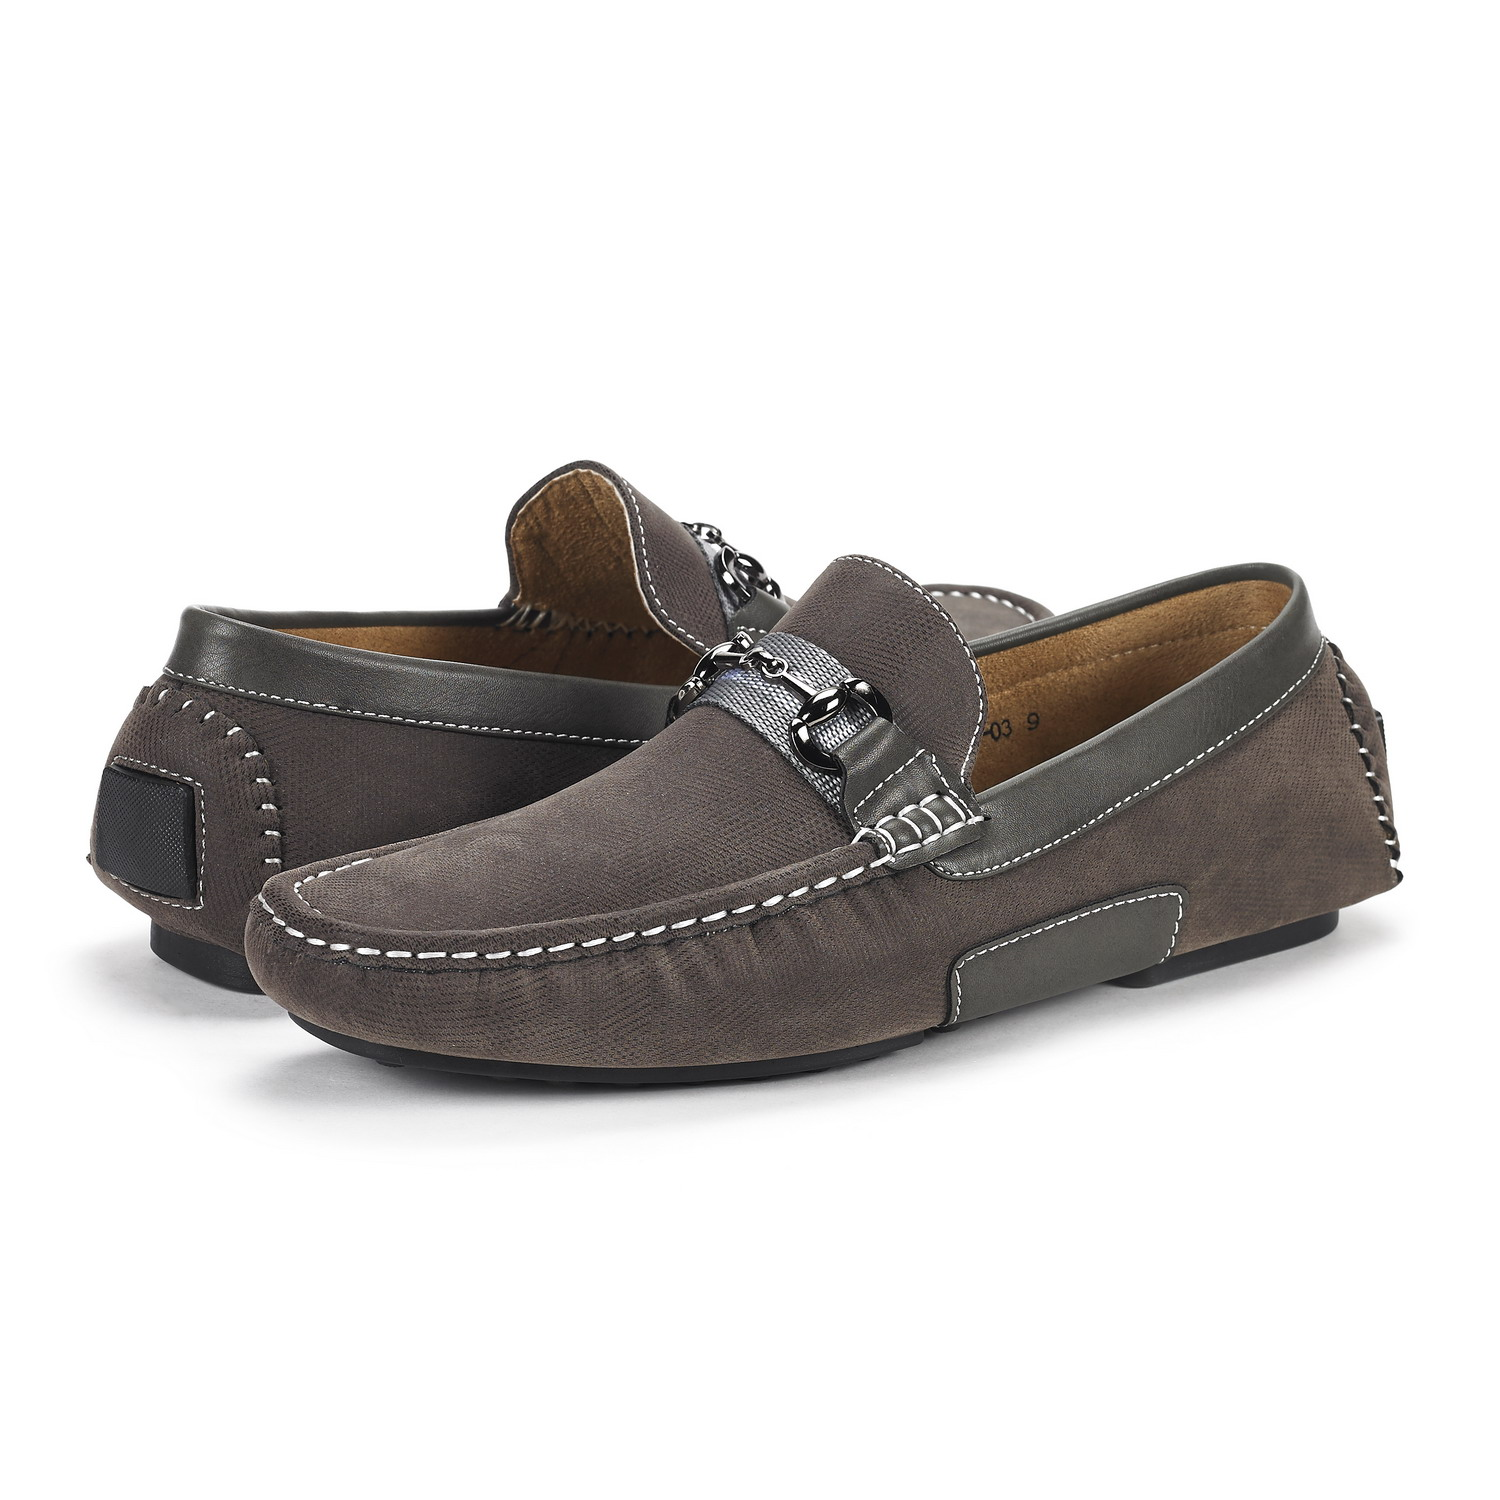 Bruno-Marc-Mens-Casual-Driving-Antiskid-Loafers-Leather-Slip-On-Moccasins-Shoes thumbnail 21